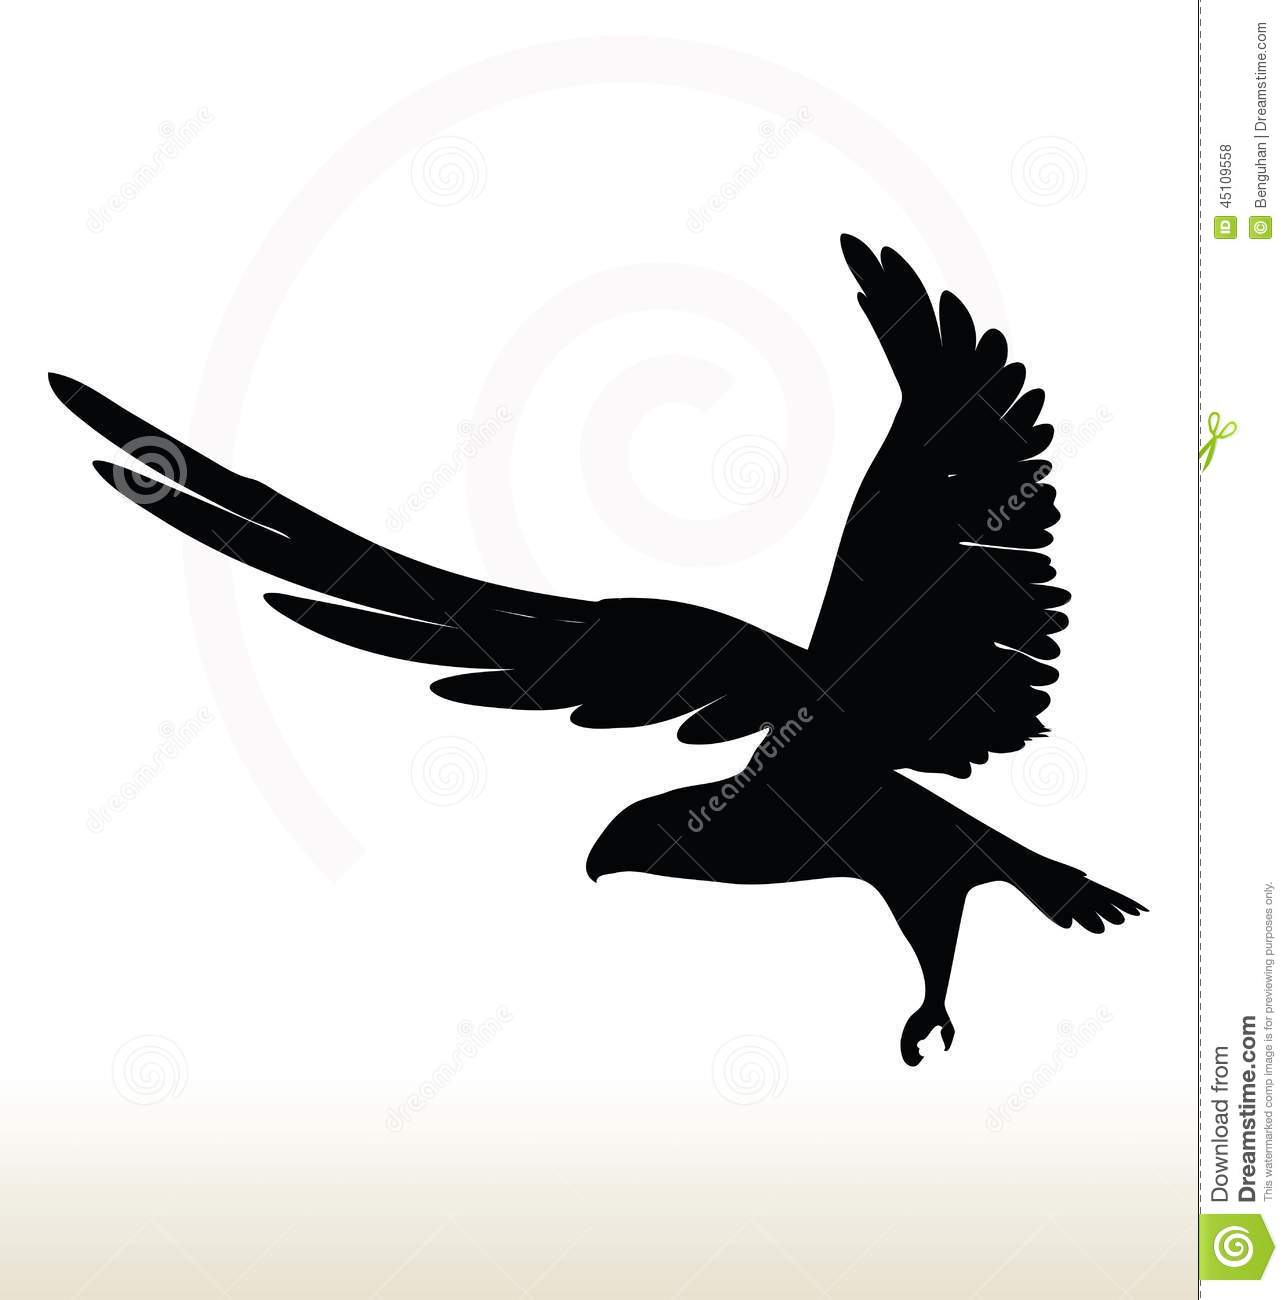 Illustration of eagle silhouette isolated on white background.